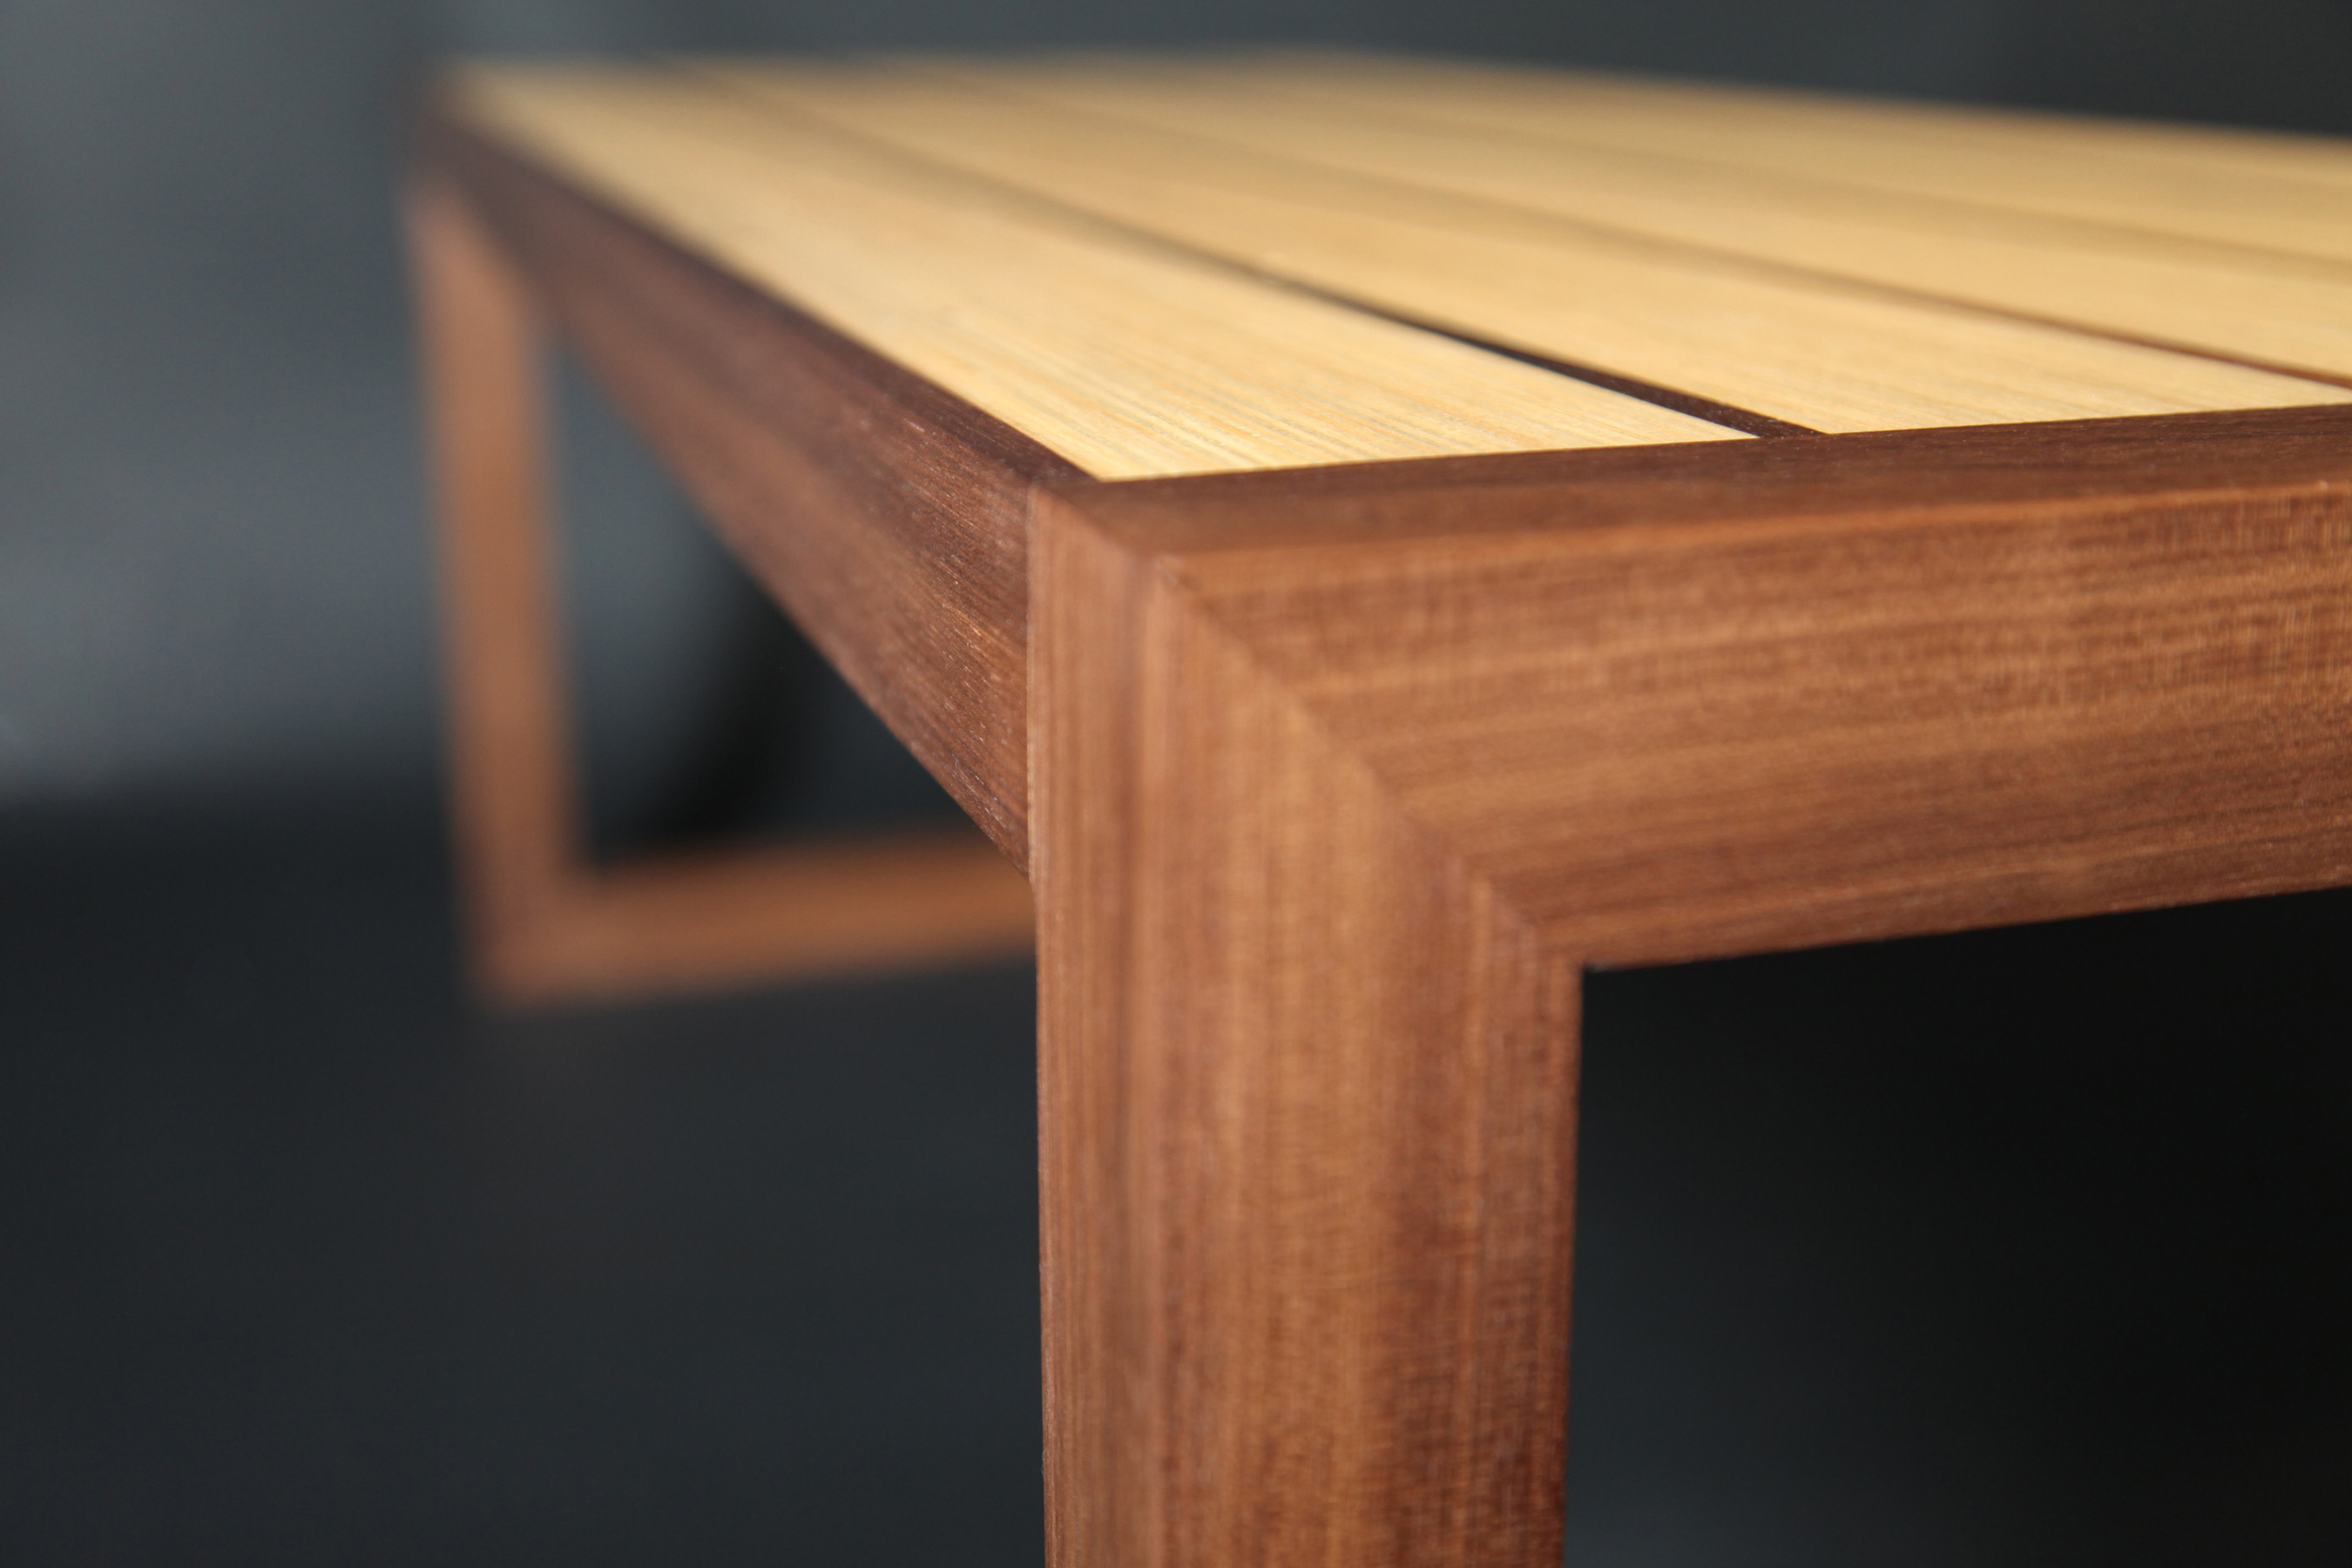 Baltic_Ply_Walnut2.jpg